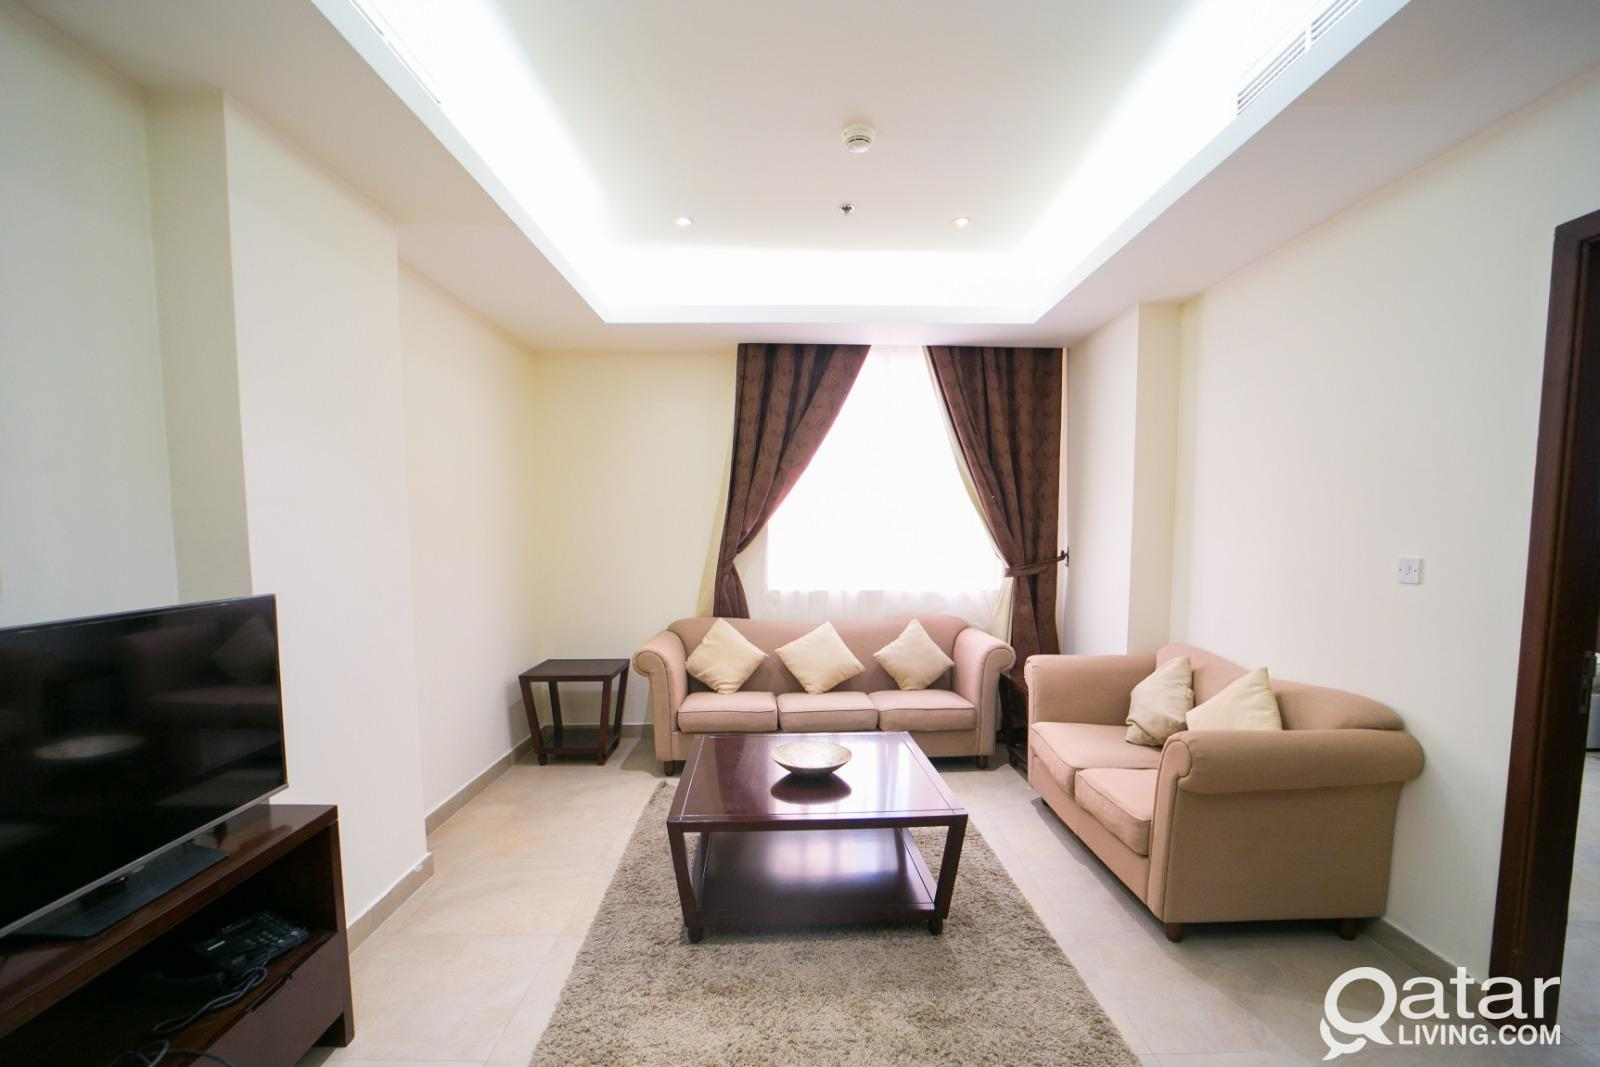 Hot Offer - Fully Furnished 2 BHK Apartment For Re